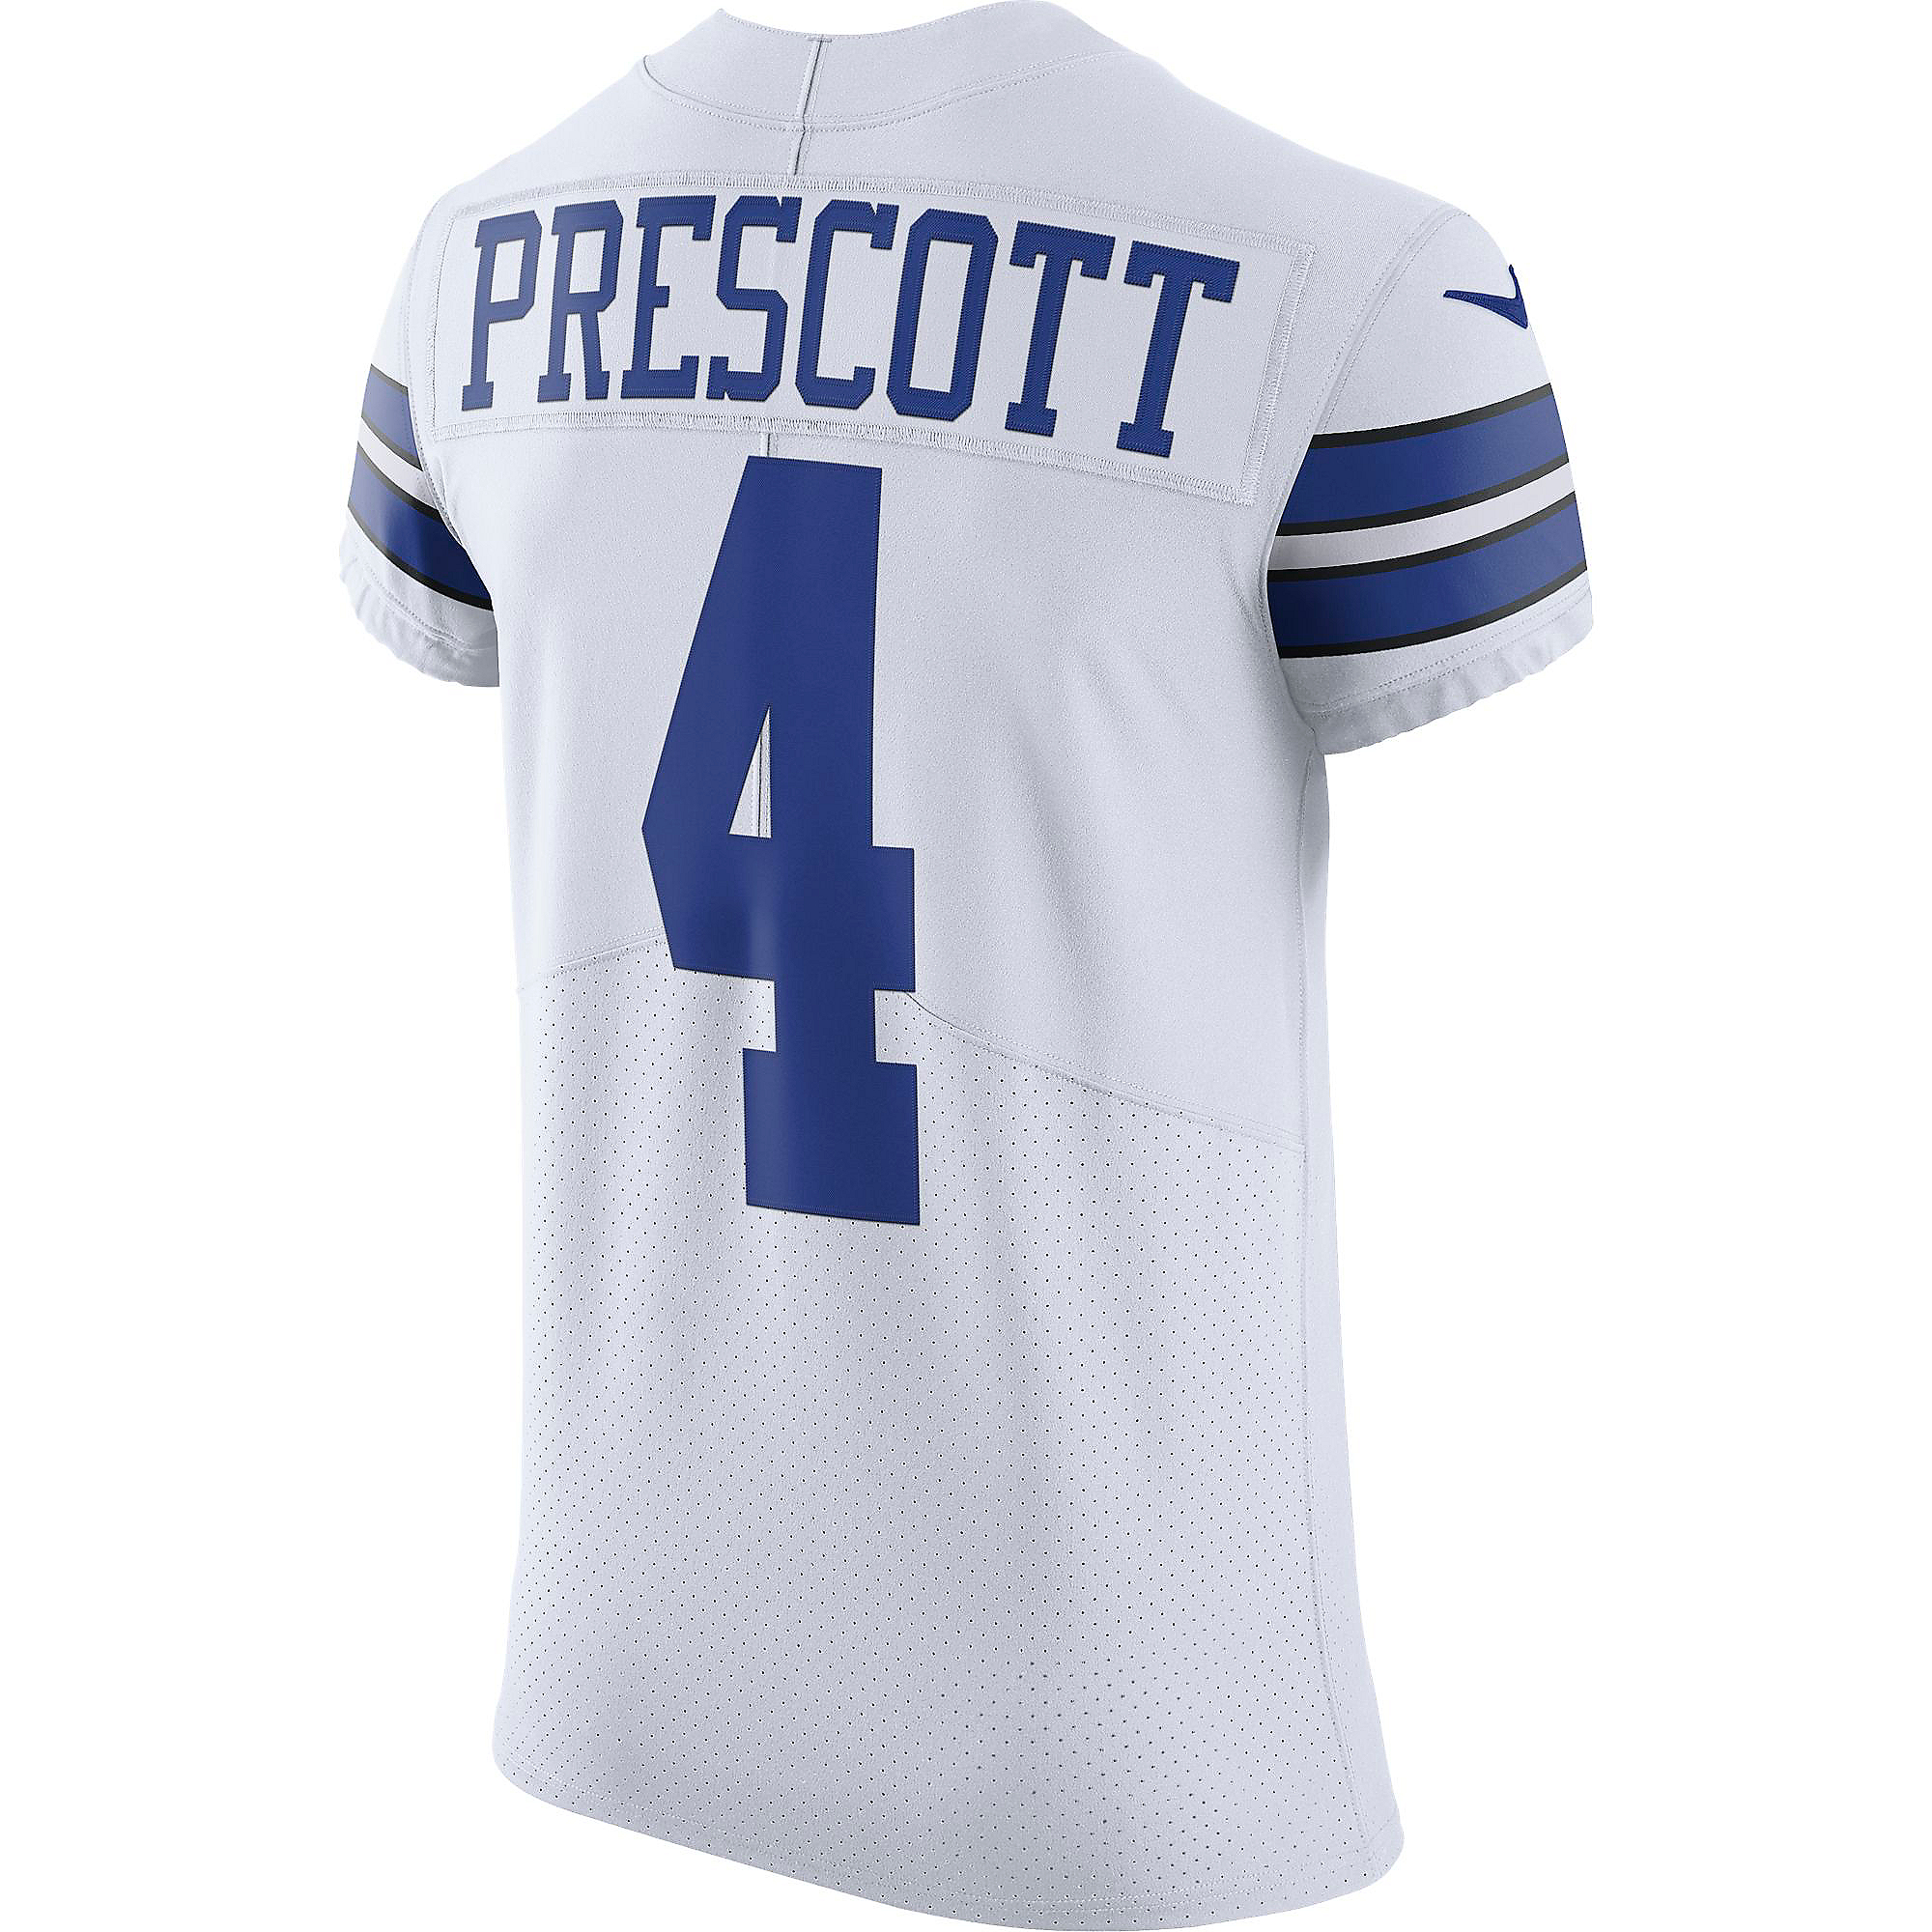 Dallas Cowboys Dak Prescott #4 Nike Vapor Untouchable White Elite Authentic Jersey